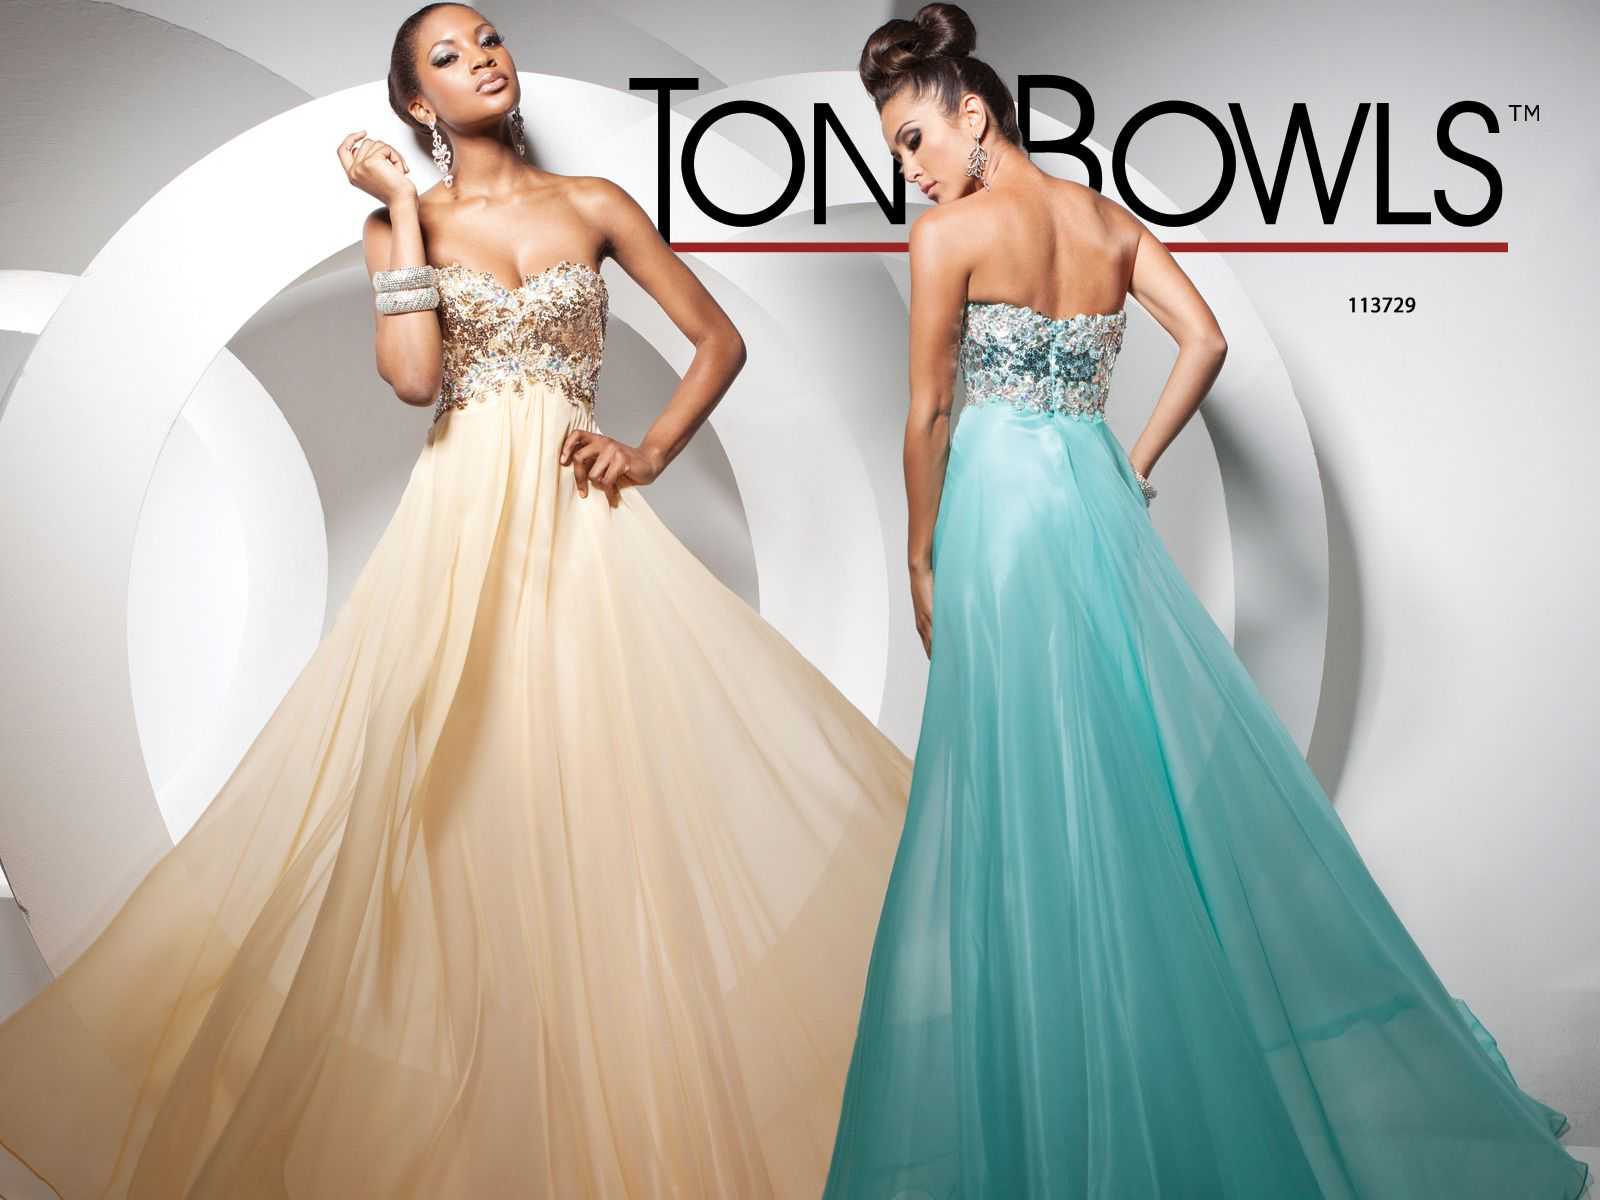 Tony Bowls Prom available at Albert Griffin Bridal, Lakeland ...